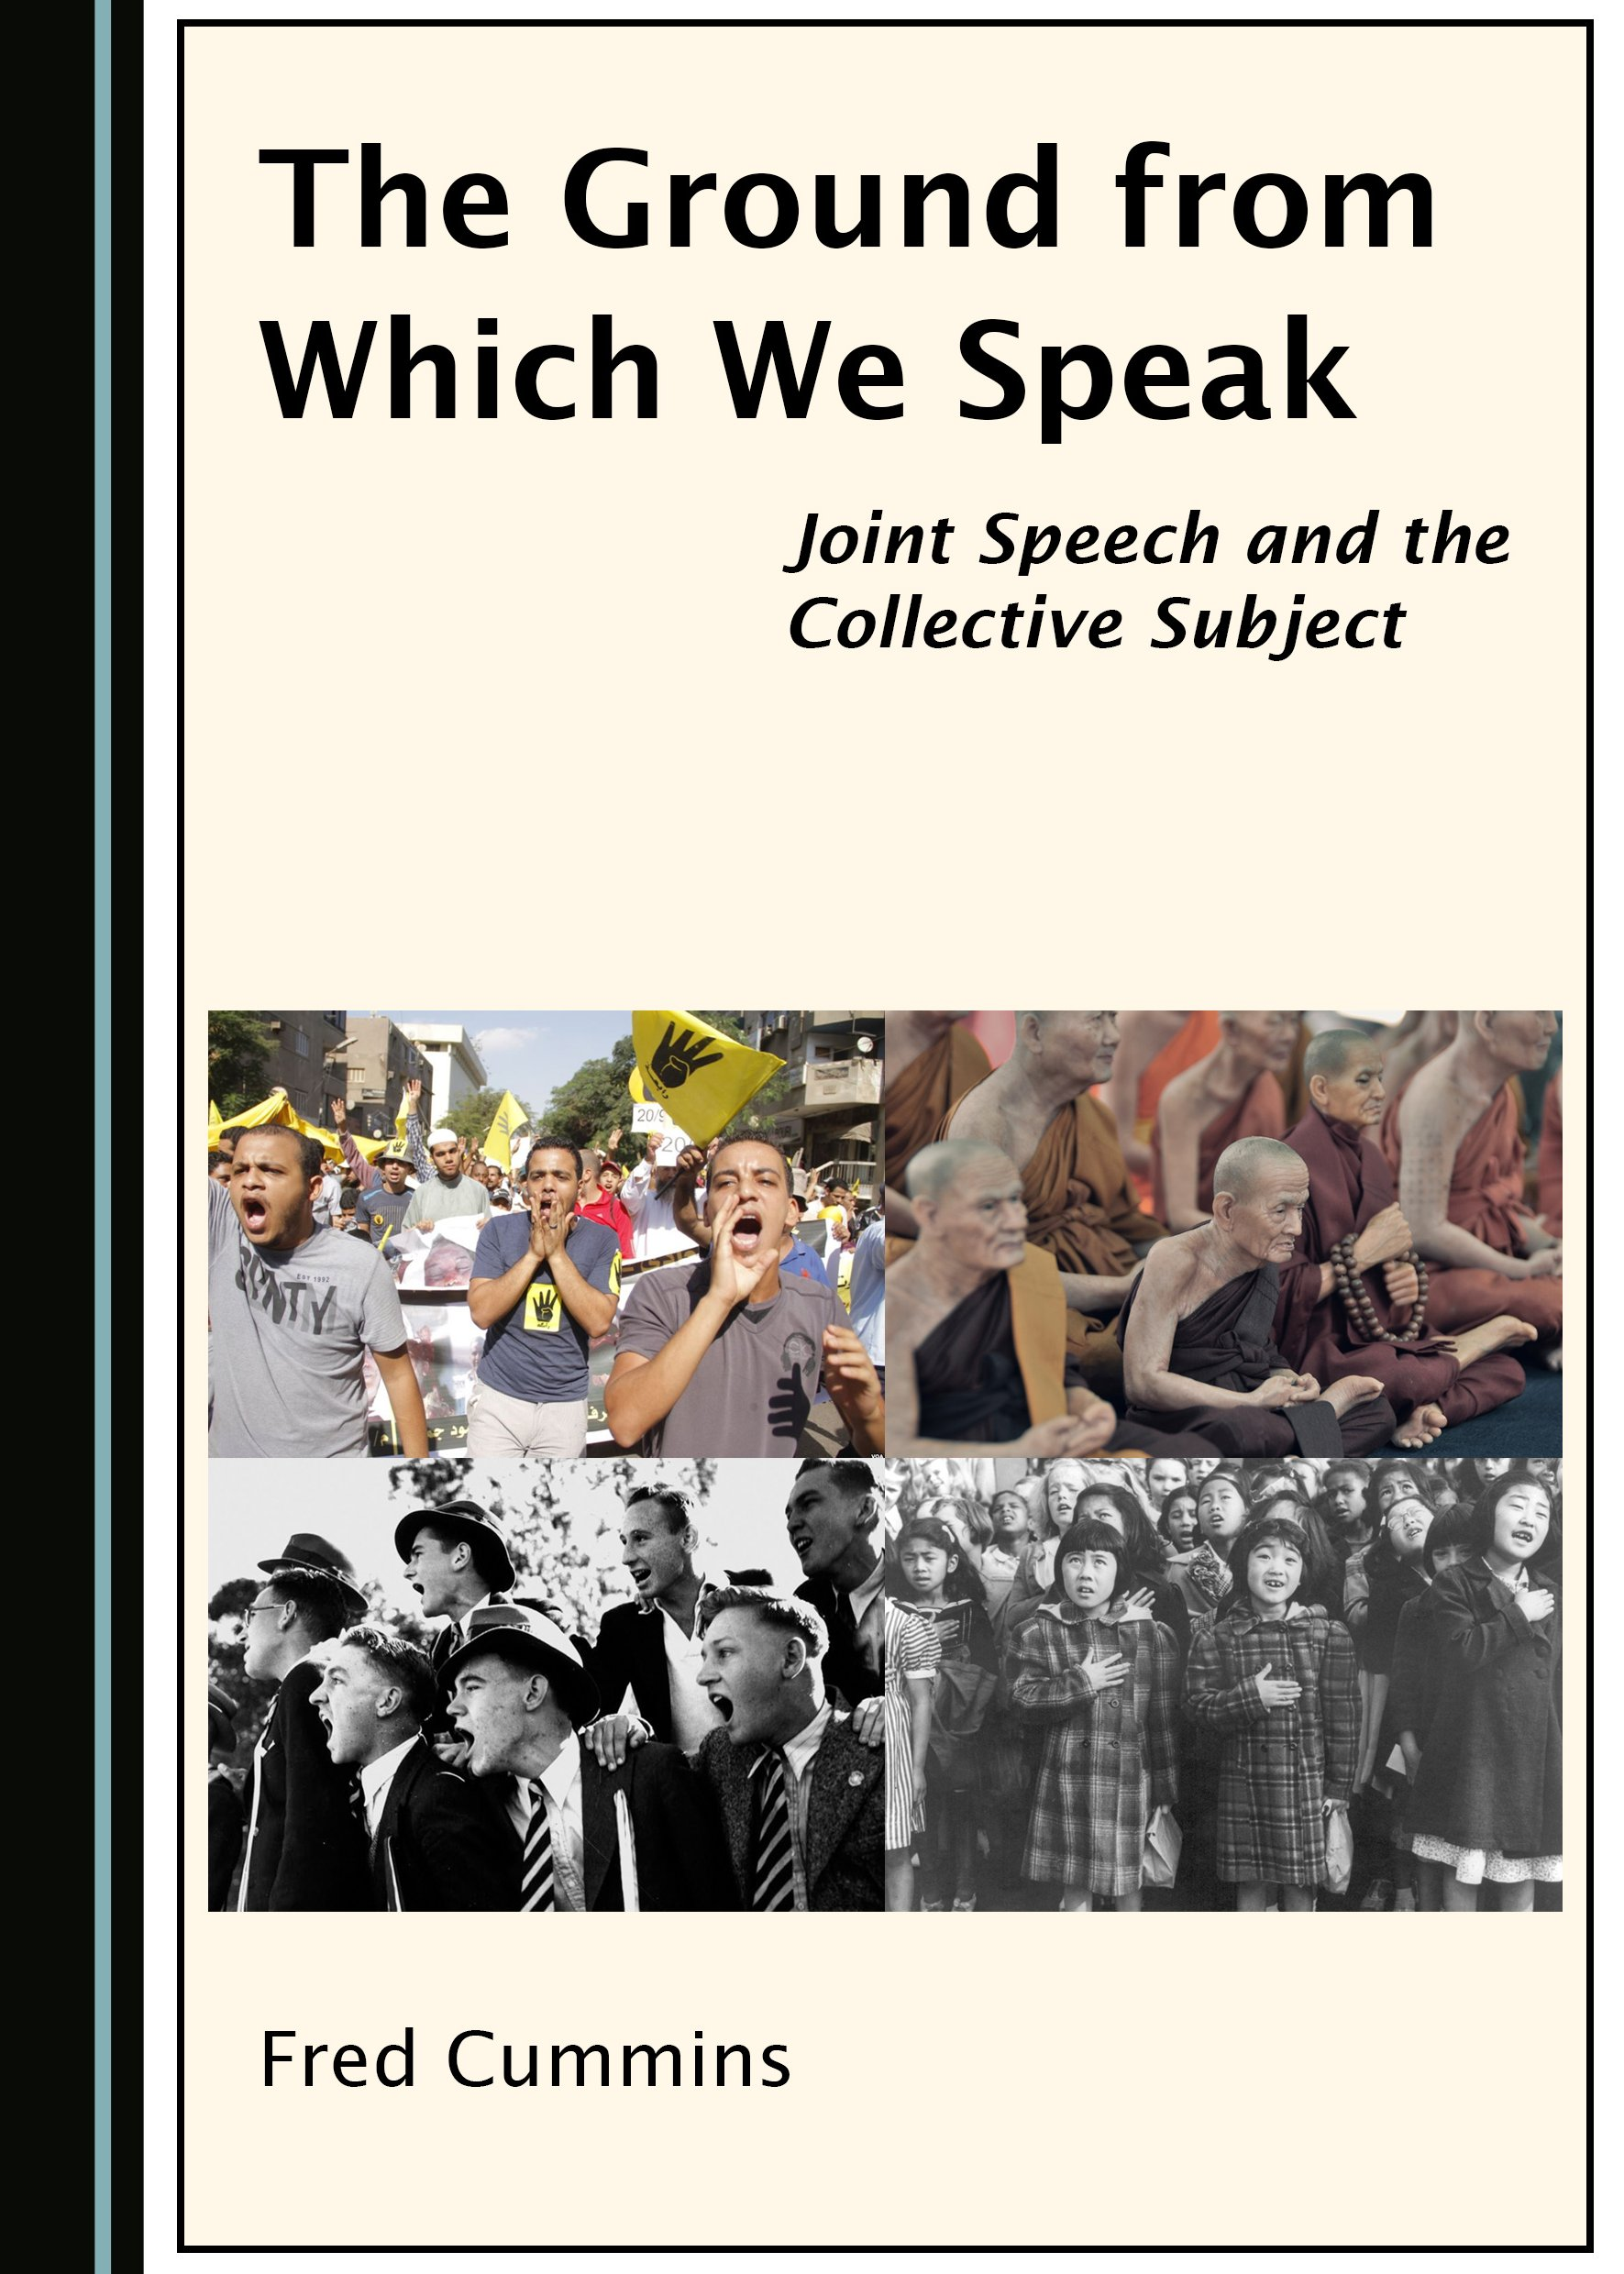 The Ground from Which We Speak: Joint Speech and the Collective Subject